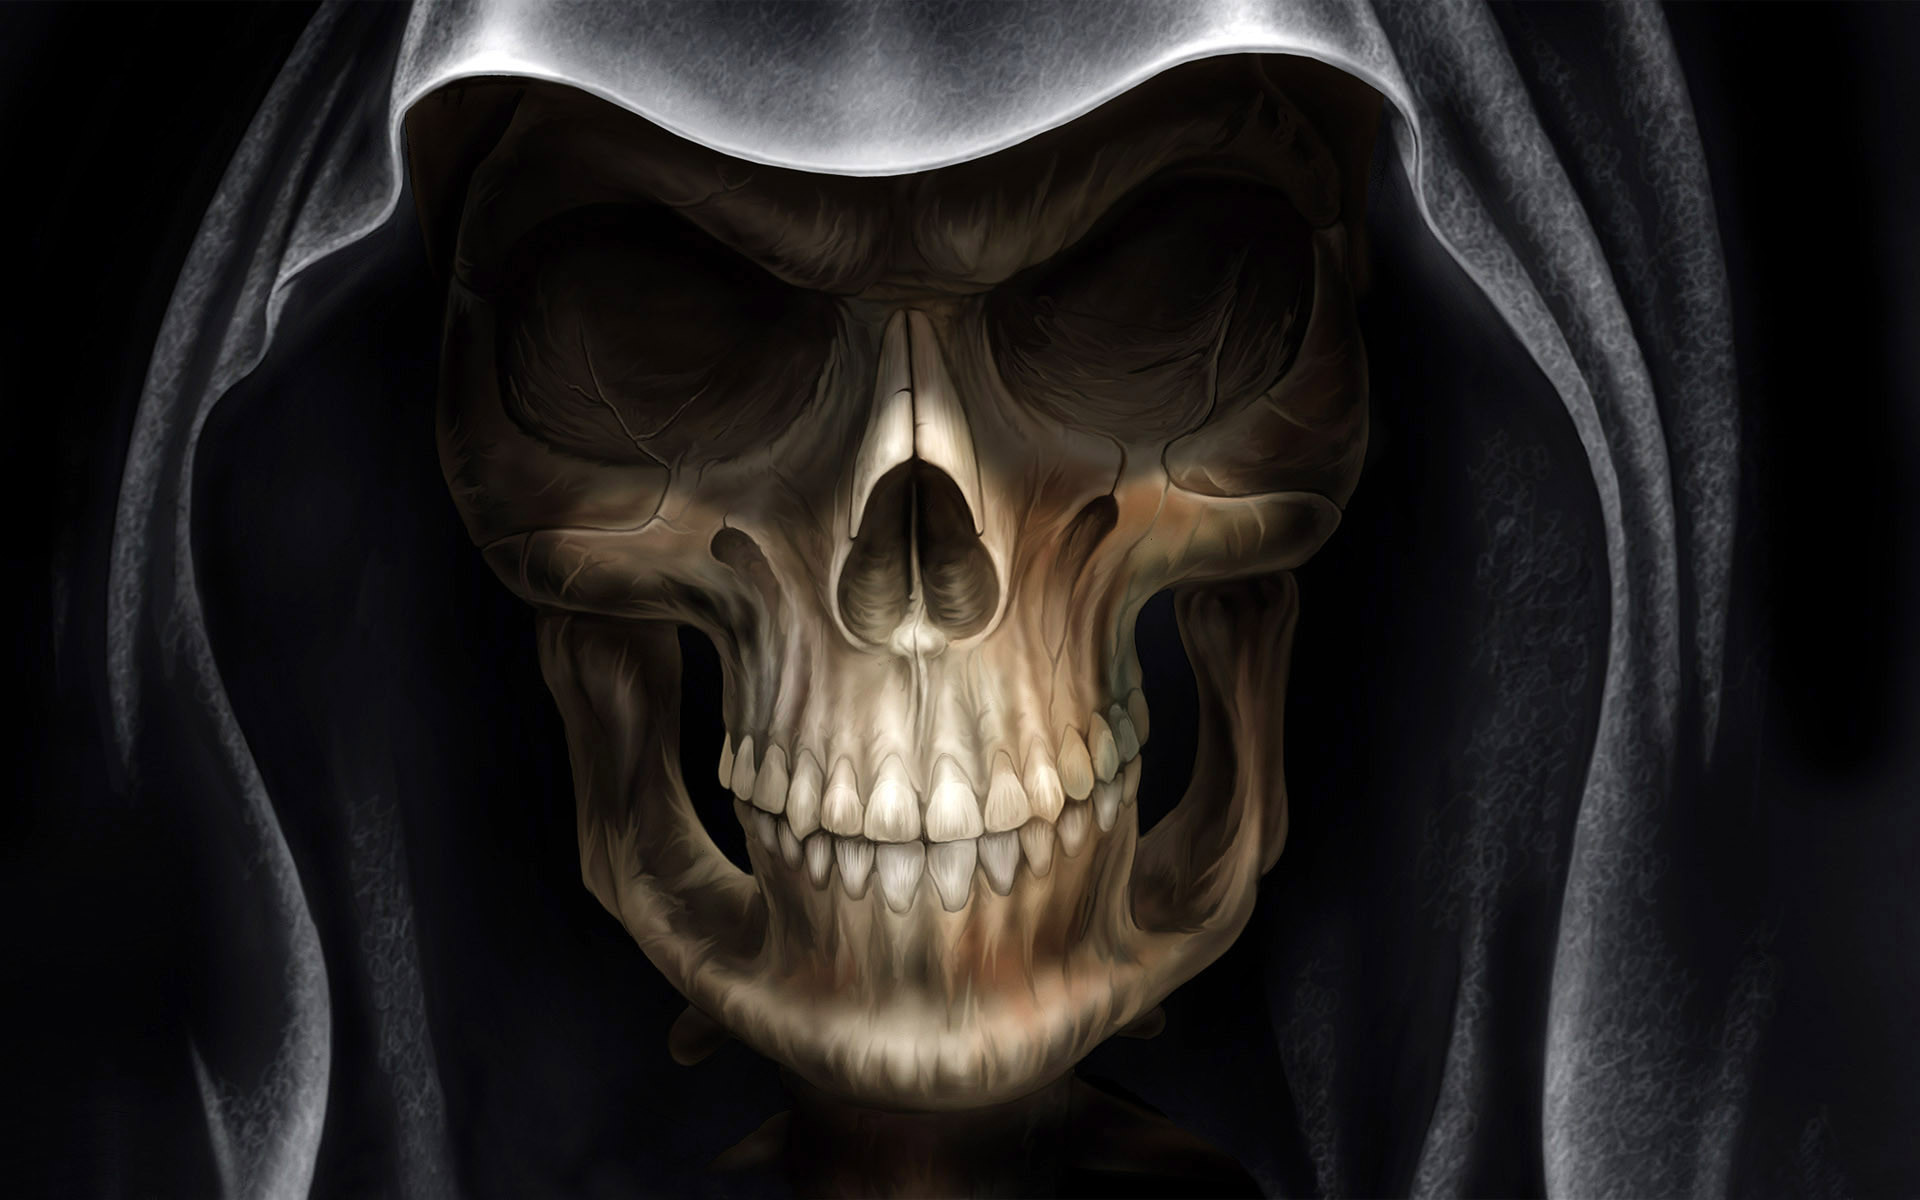 Skull Wallpapers High Quality Download Free